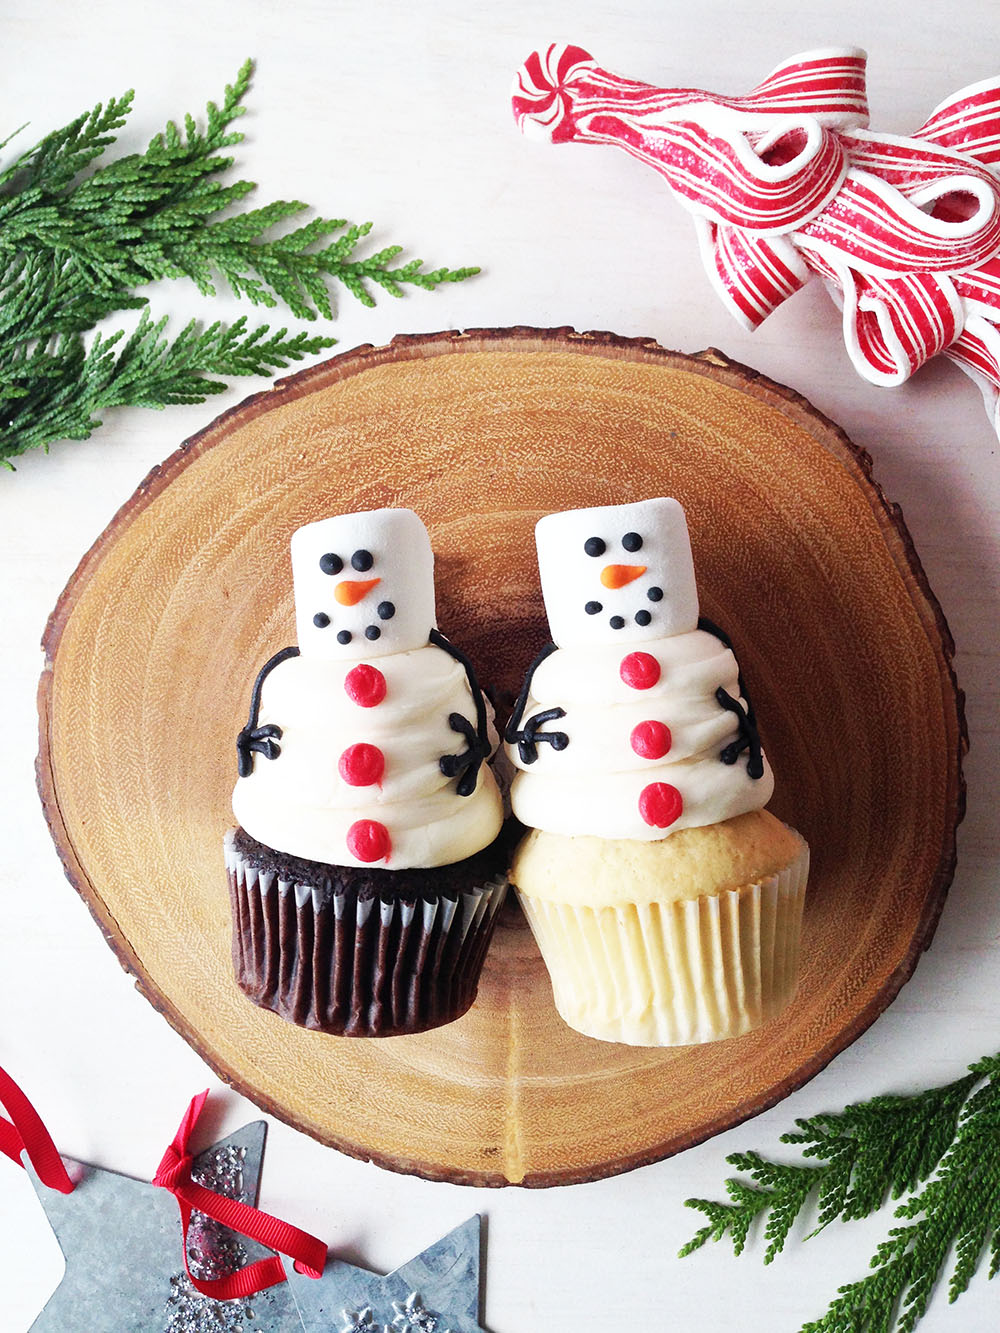 Chocolate or Vanilla Melting Snowman Cupcake - $4.00